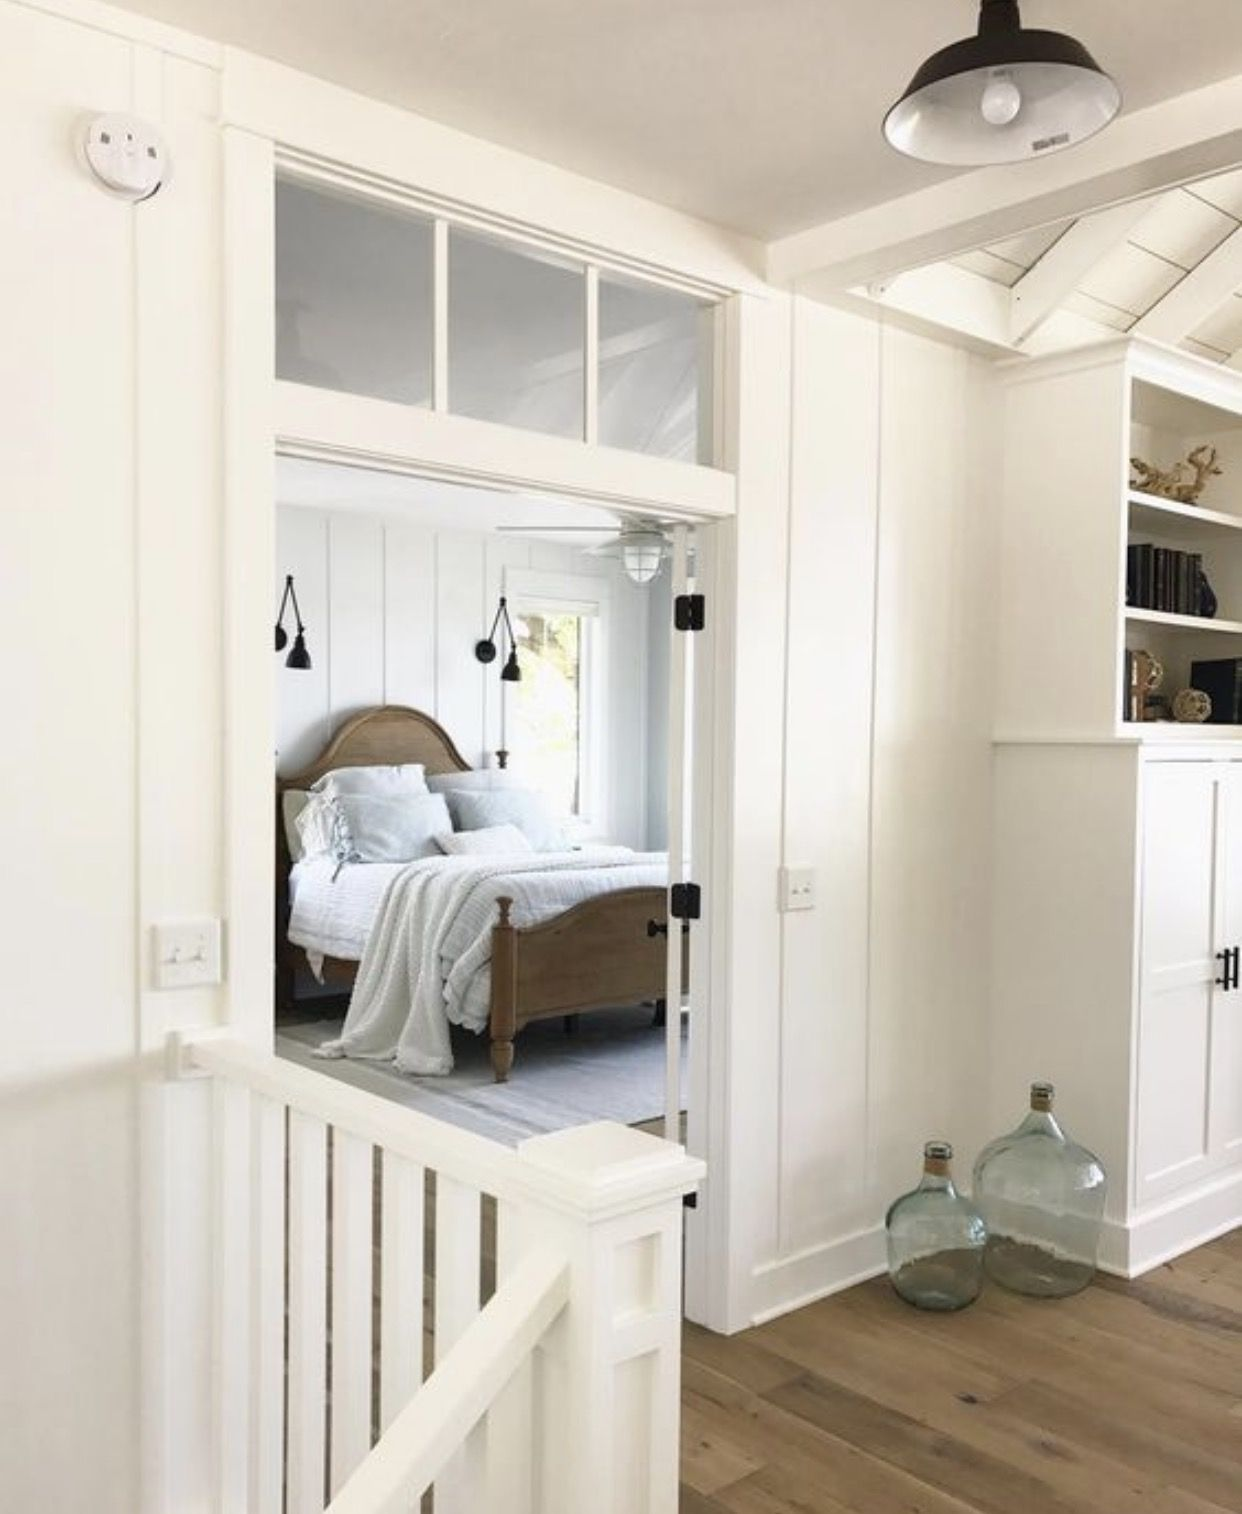 Transom Windows Above All Bedroom Doors Also Like The Idea Of A